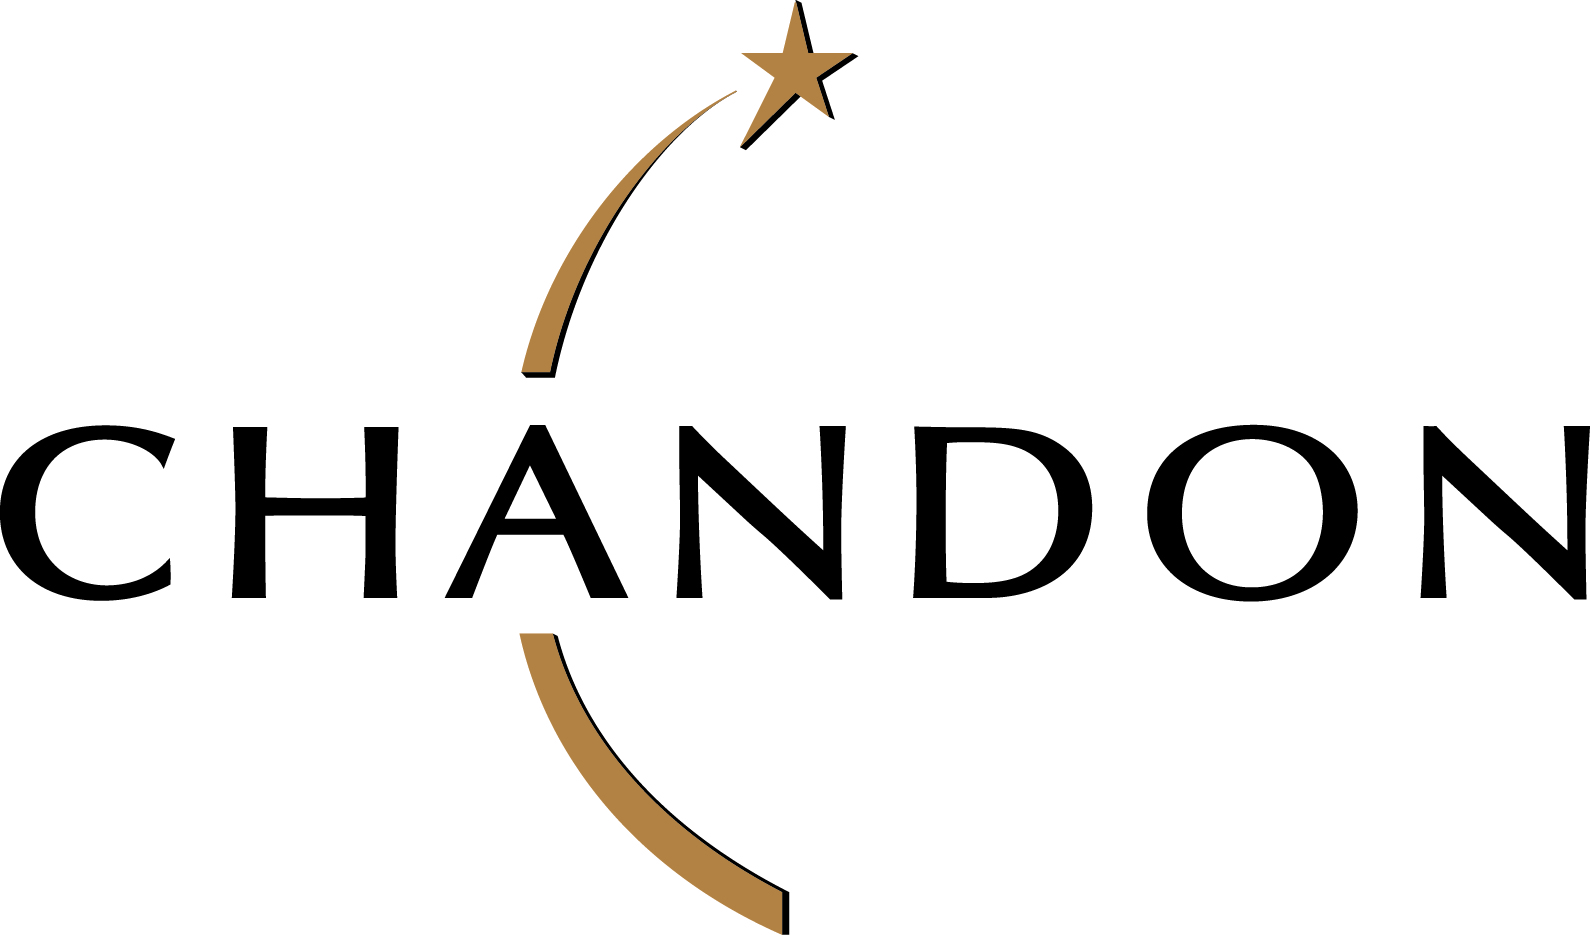 CHANDON-BRAND-LOGO.jpg